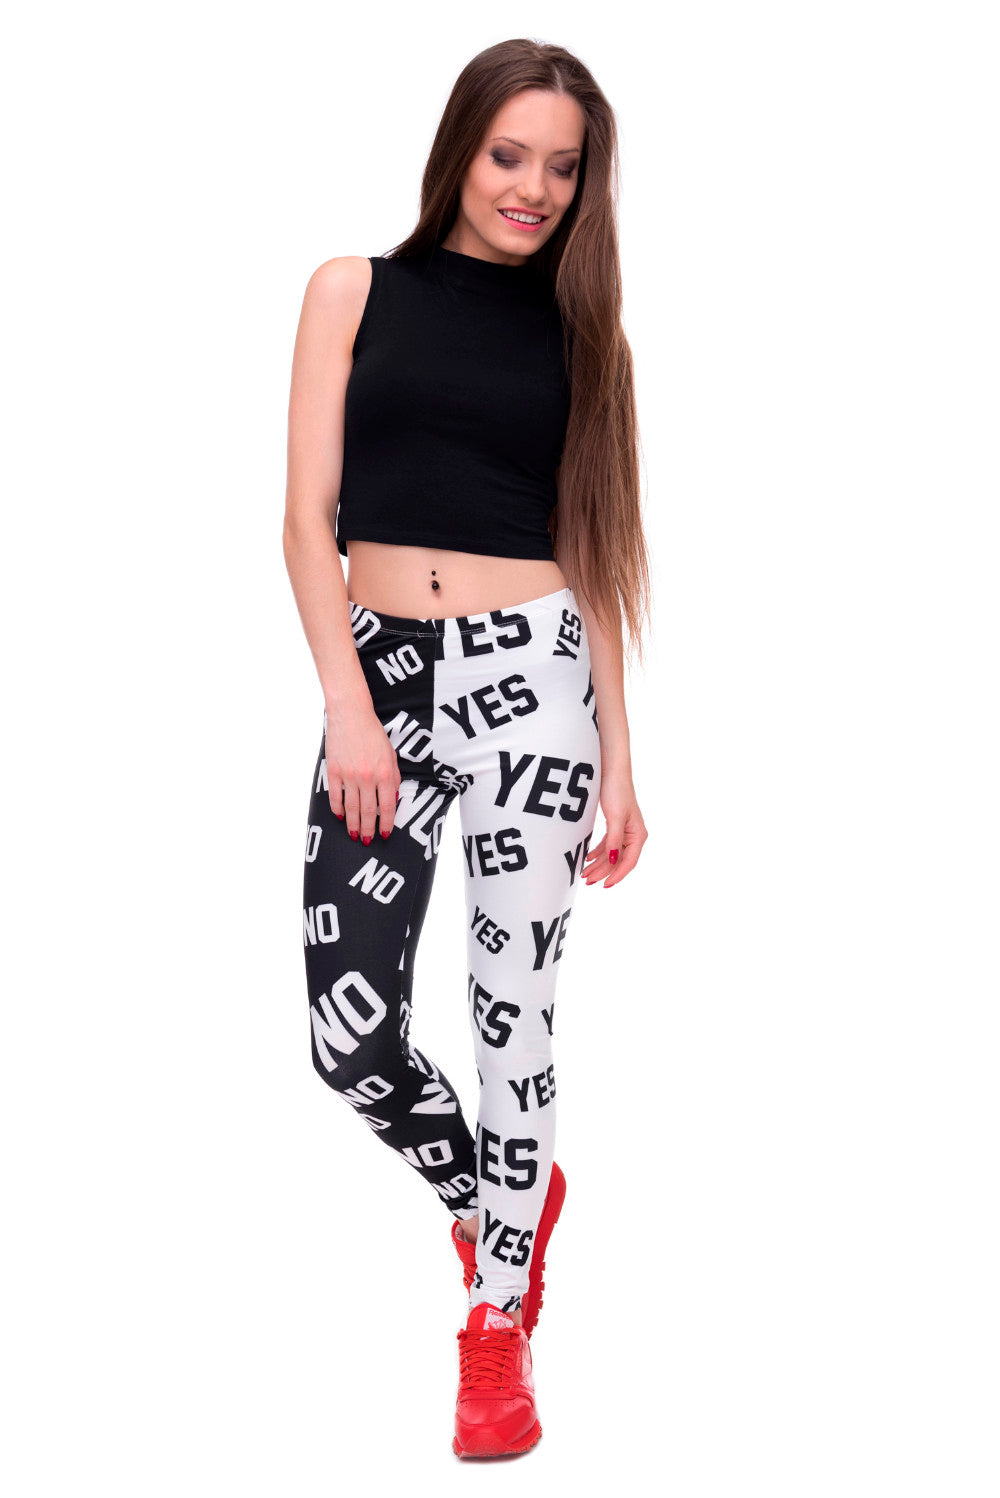 Elasticity Yes and No Printed Slim Fit Legging Workout Trousers